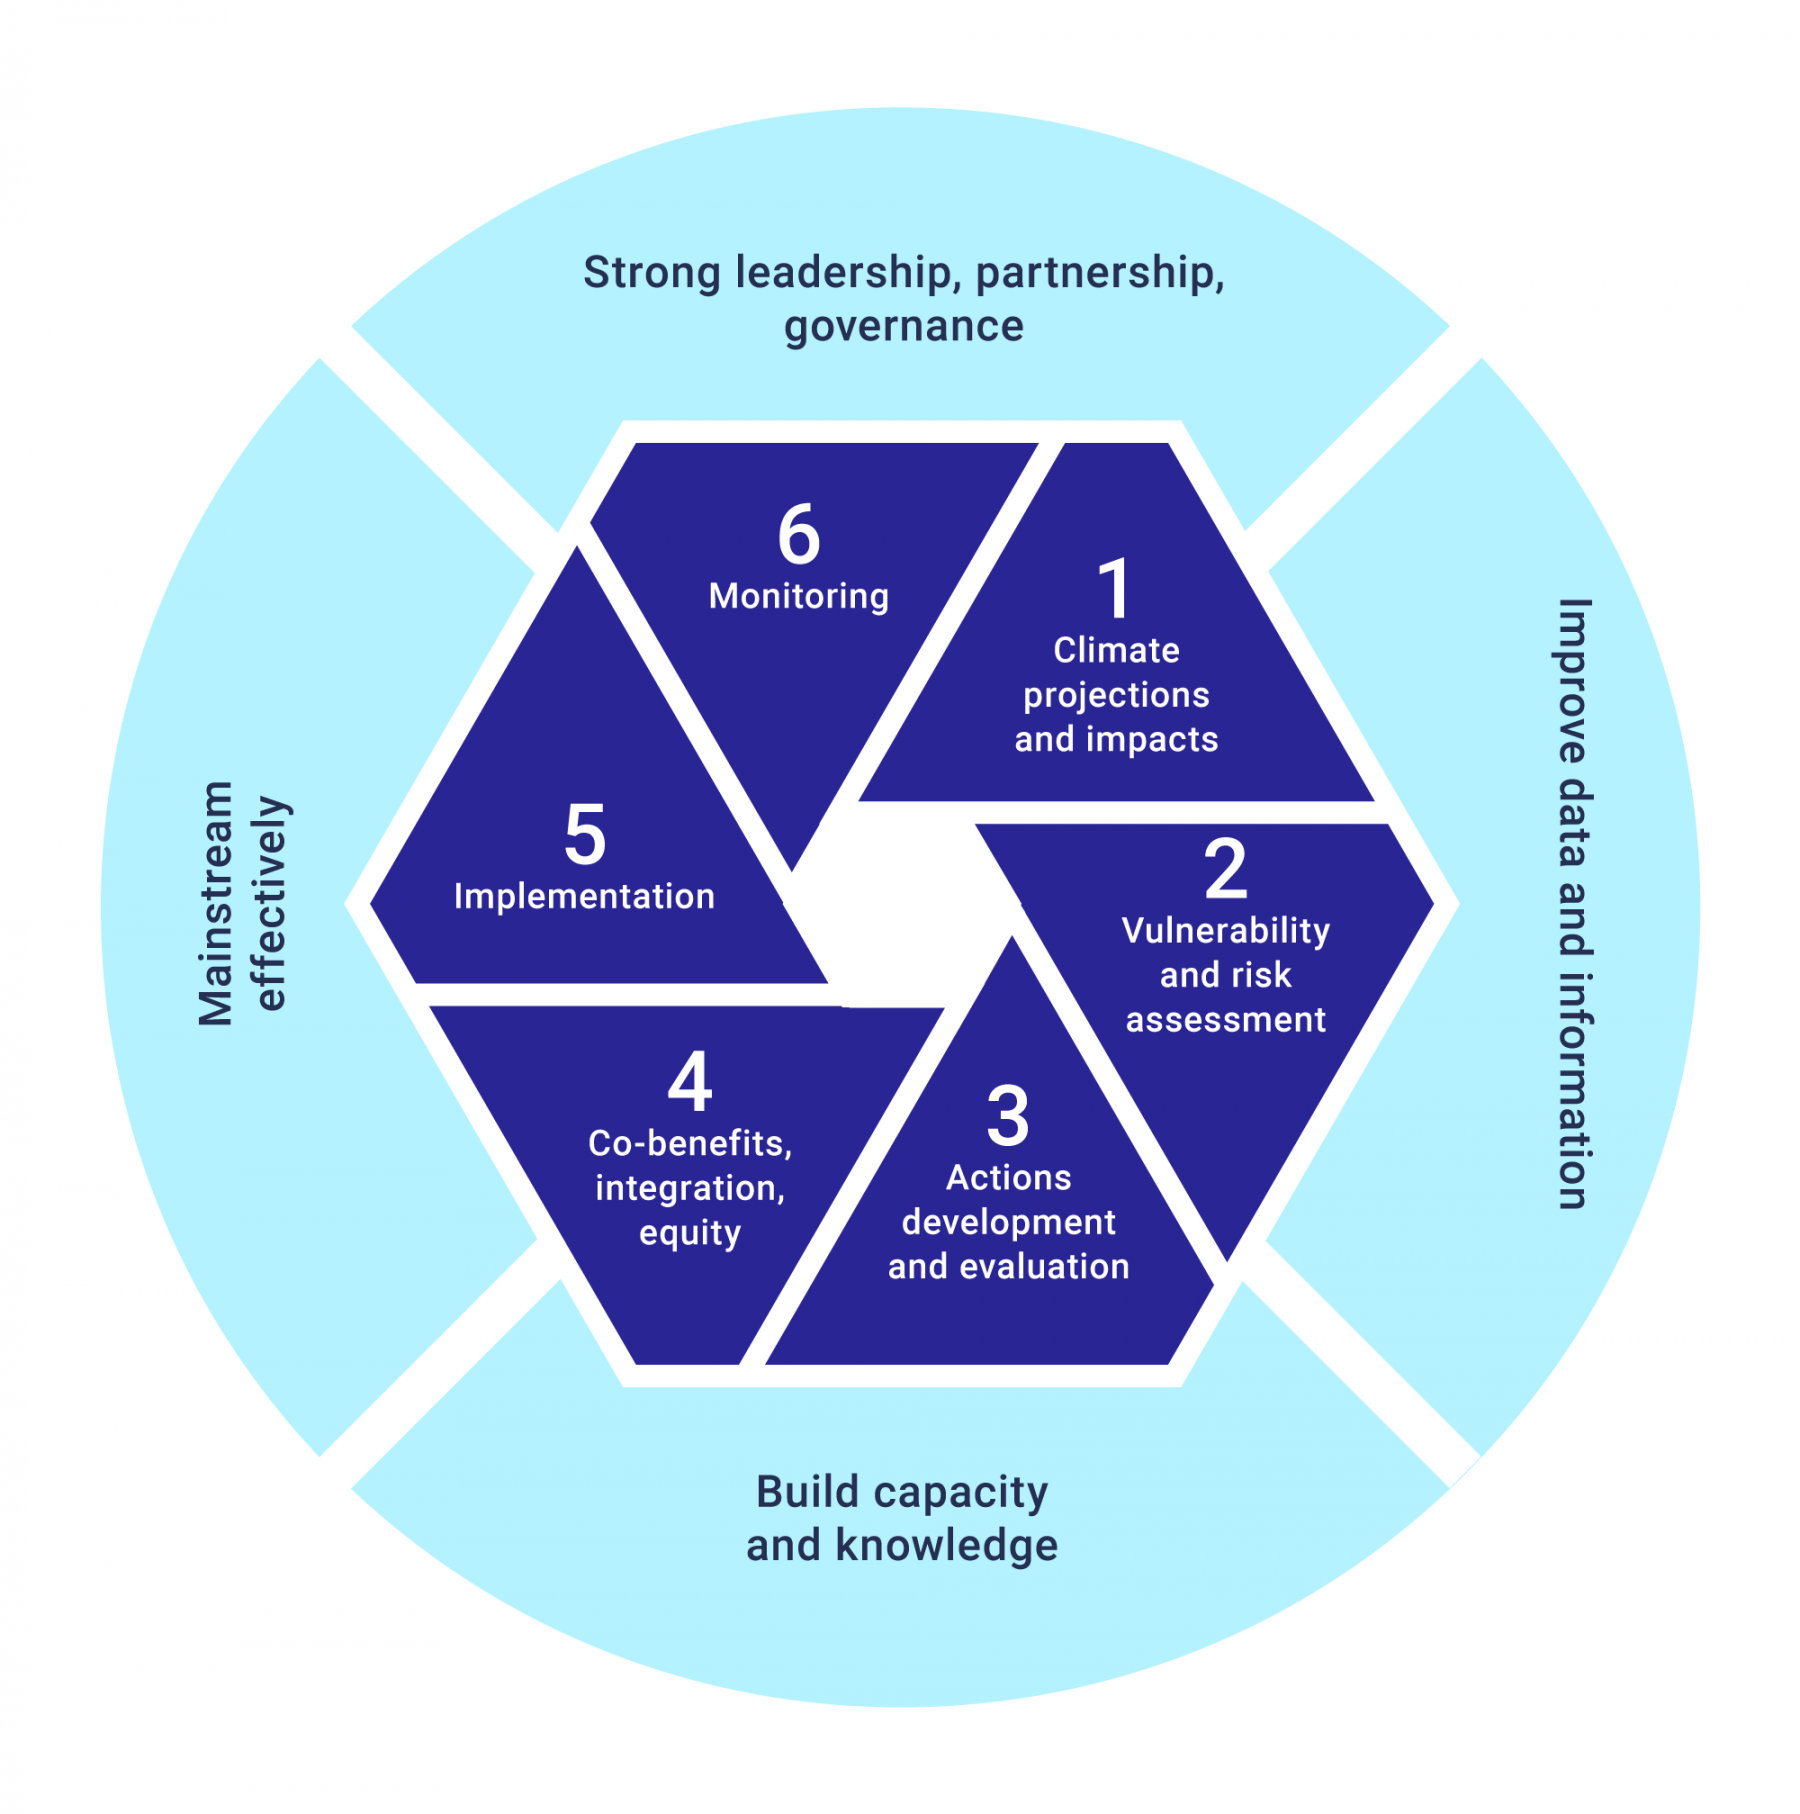 Graphical representation of the six step traditional adaptation planning process, with enabling actions added. The first step is, climate projections and impacts; second, vulnerability and risk assessment; third, actions, development and evaluation; fourth, co-benefits, integration and equity; fifth, implementation; and, sixth, monitoring.